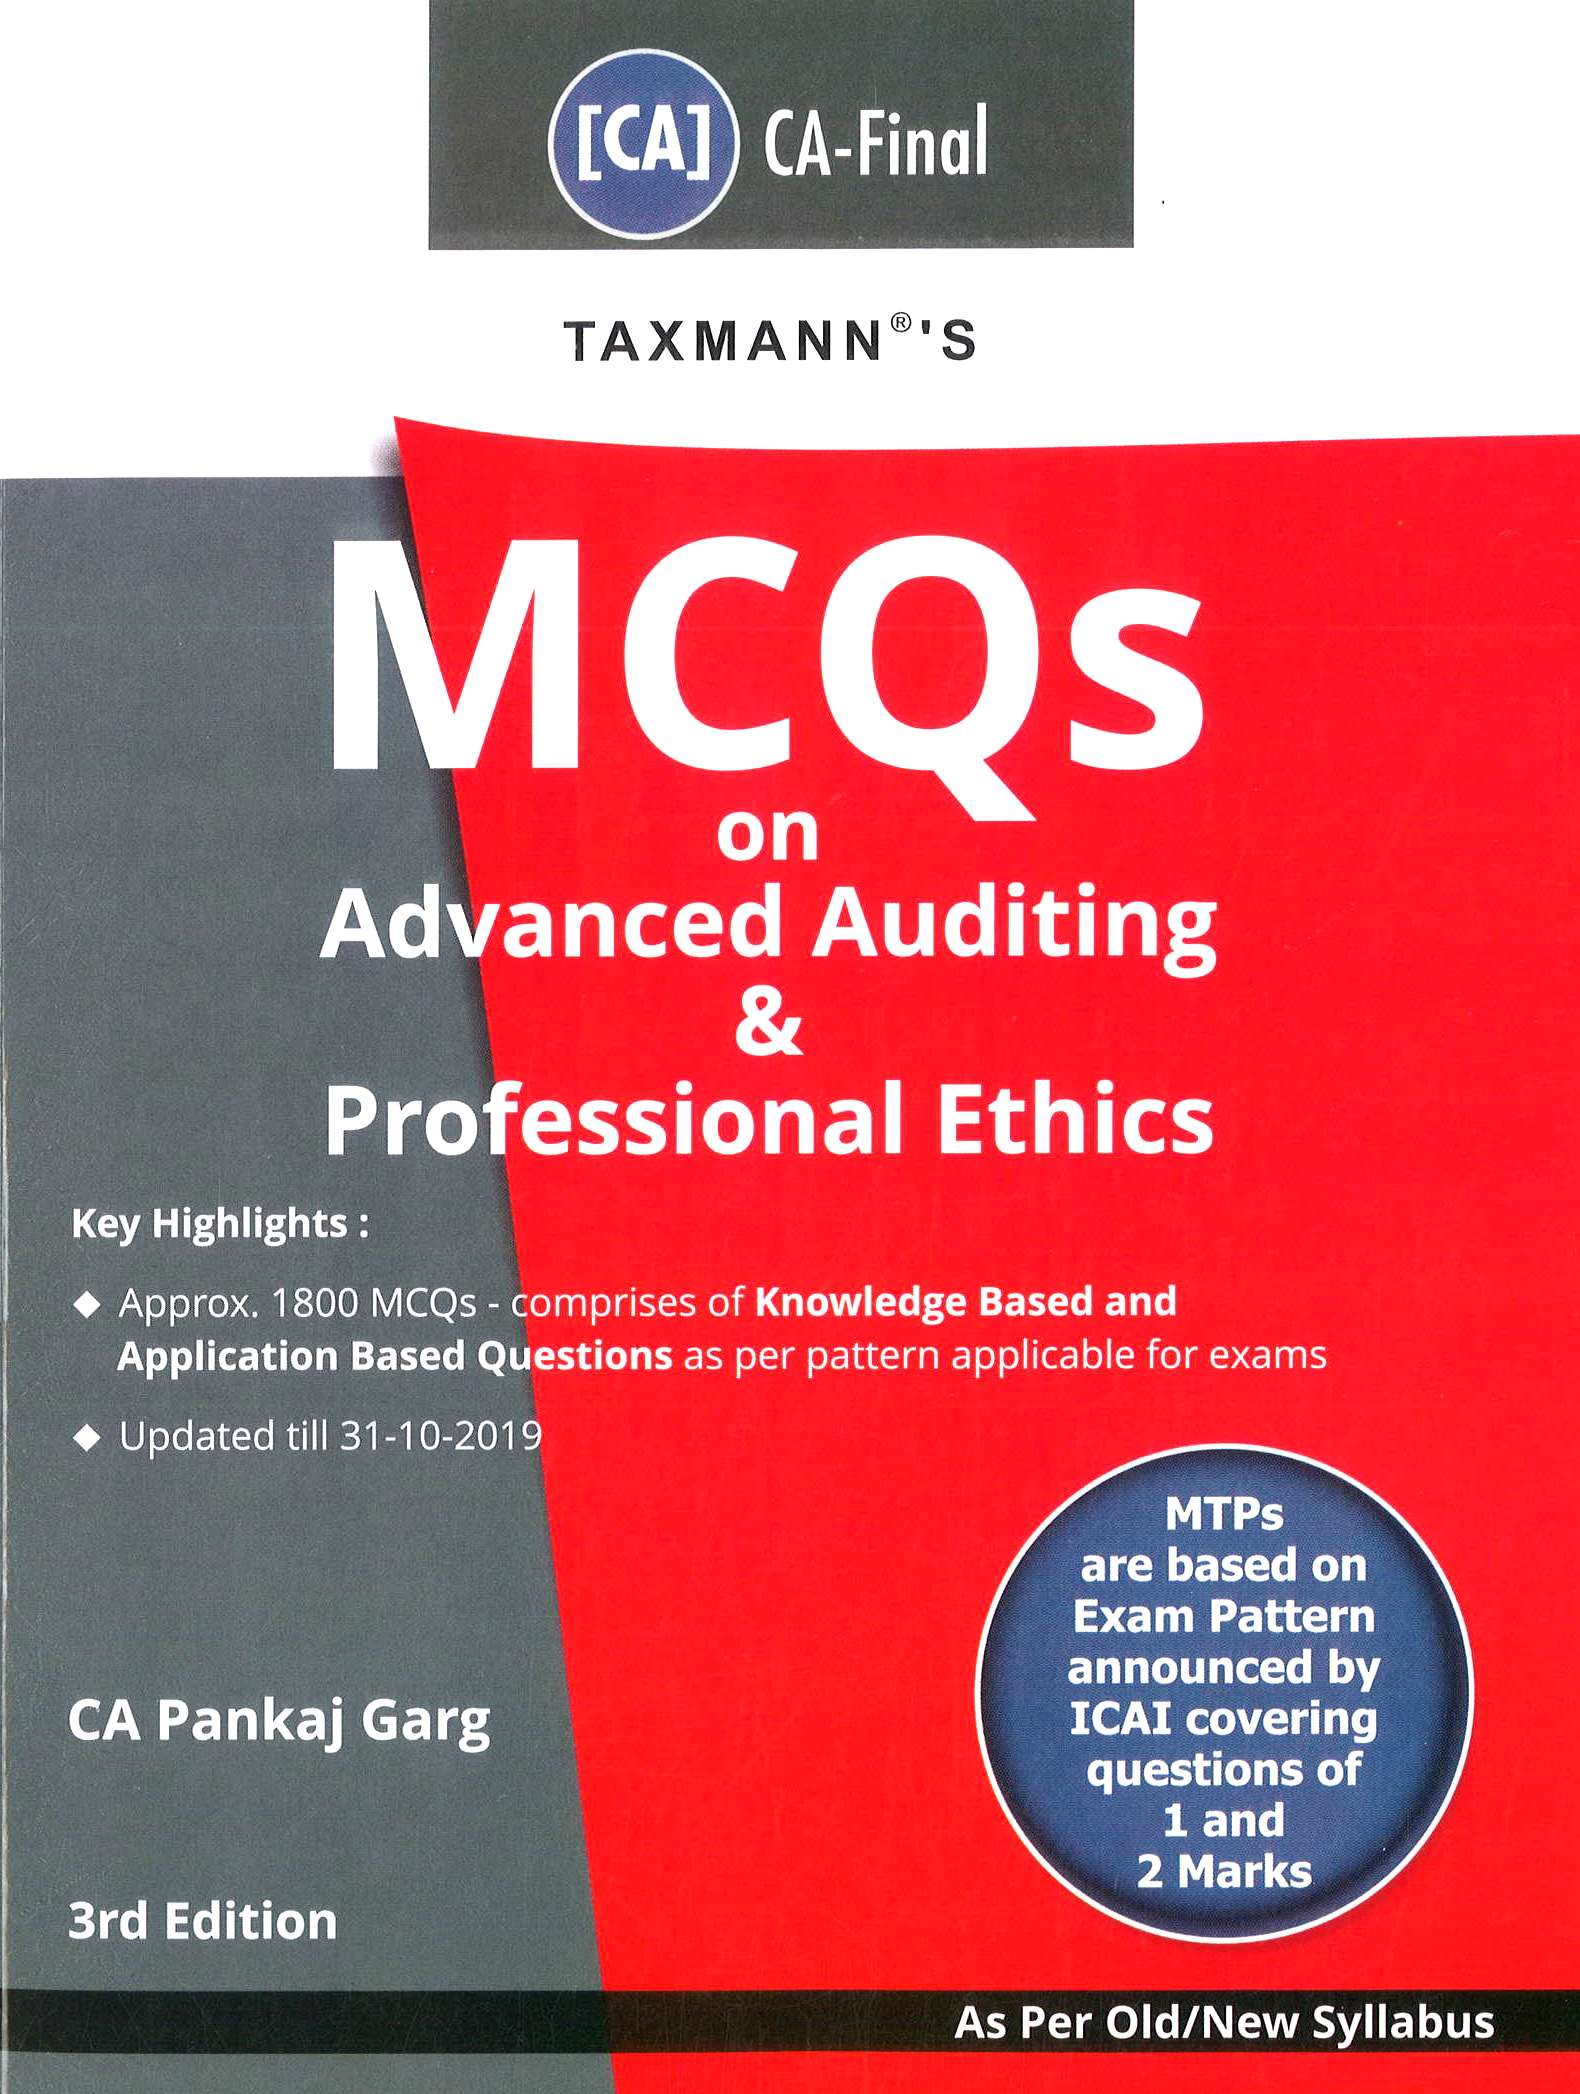 Taxmann CA Final MCQs on Advanced Auditing & Professional Ethics Old and New Syllabus By Pankaj Garg Applicable for May 2020 Exam